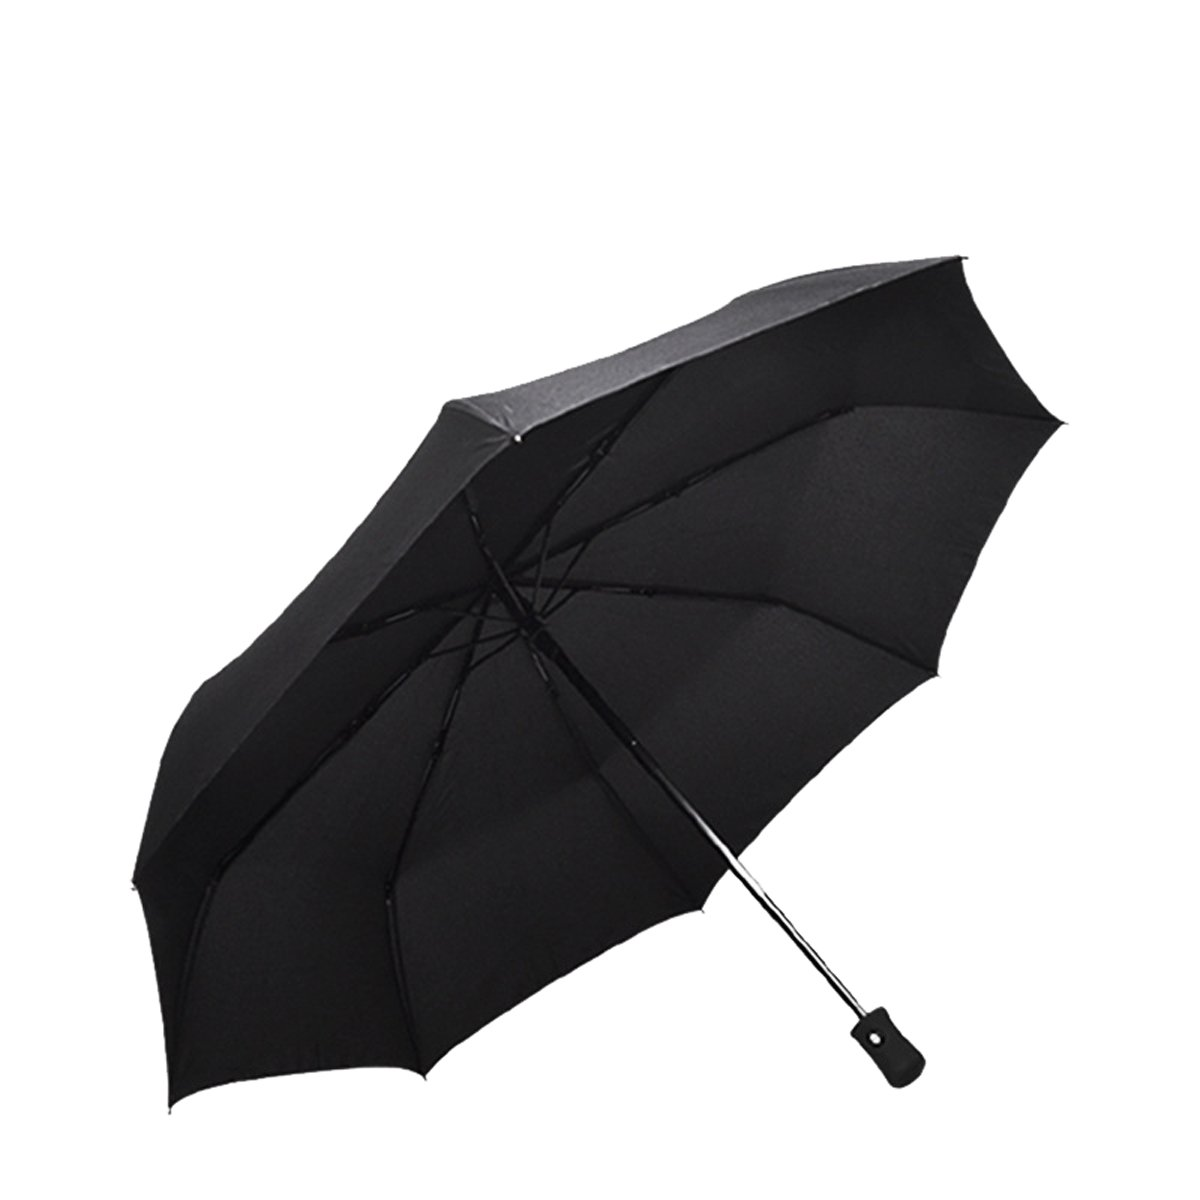 Compact Travel Umbrella - Windproof,Reinforced Canopy,Auto Open/Close